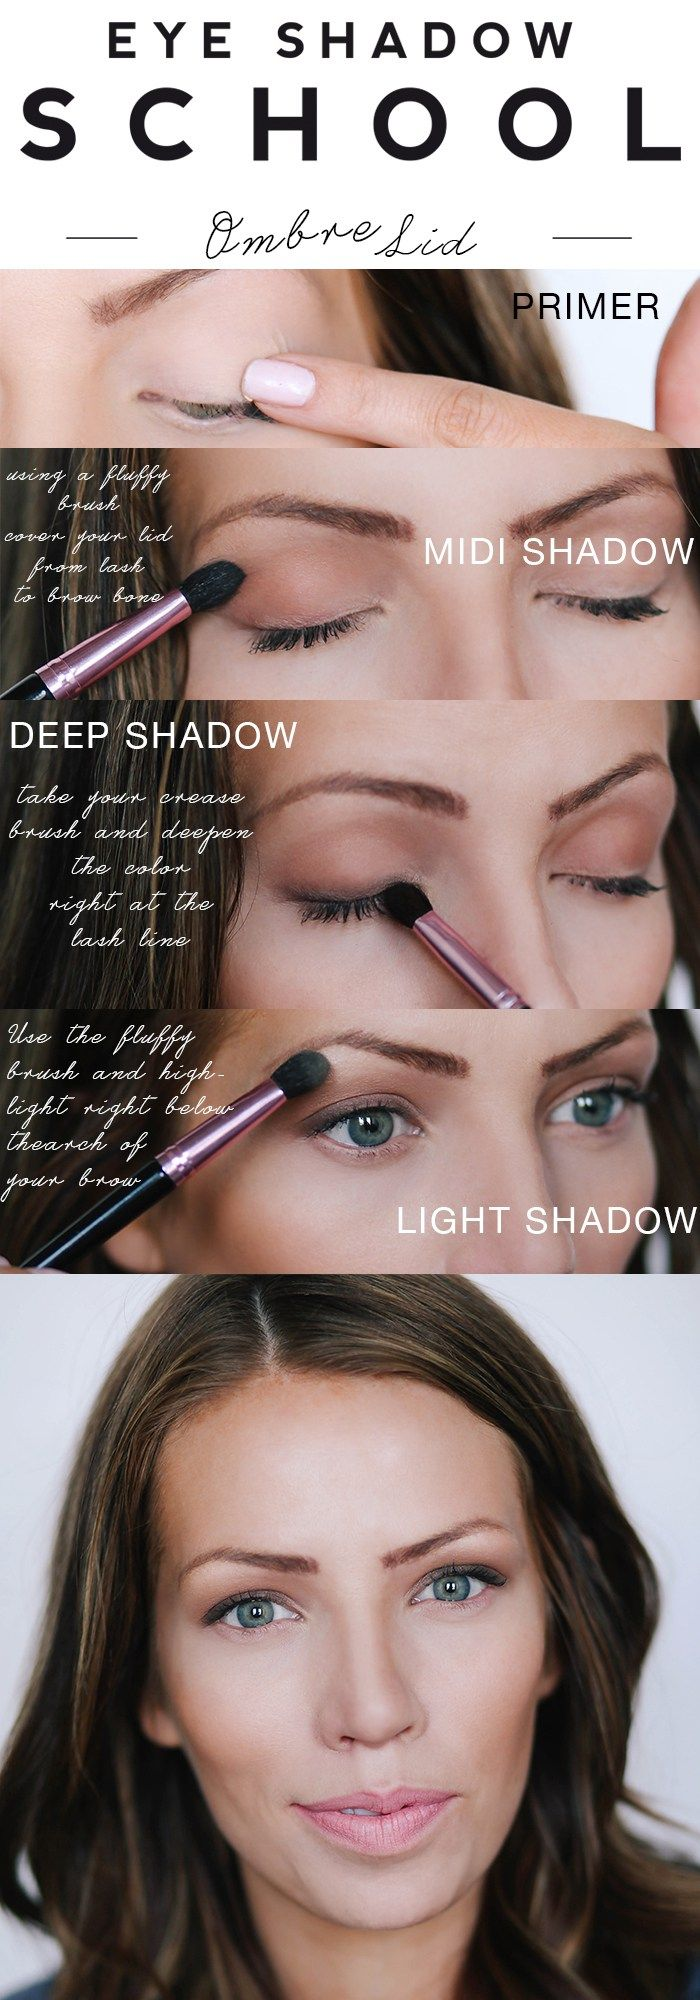 Every Eyeshadow technique simplified! So awesome! Makeup